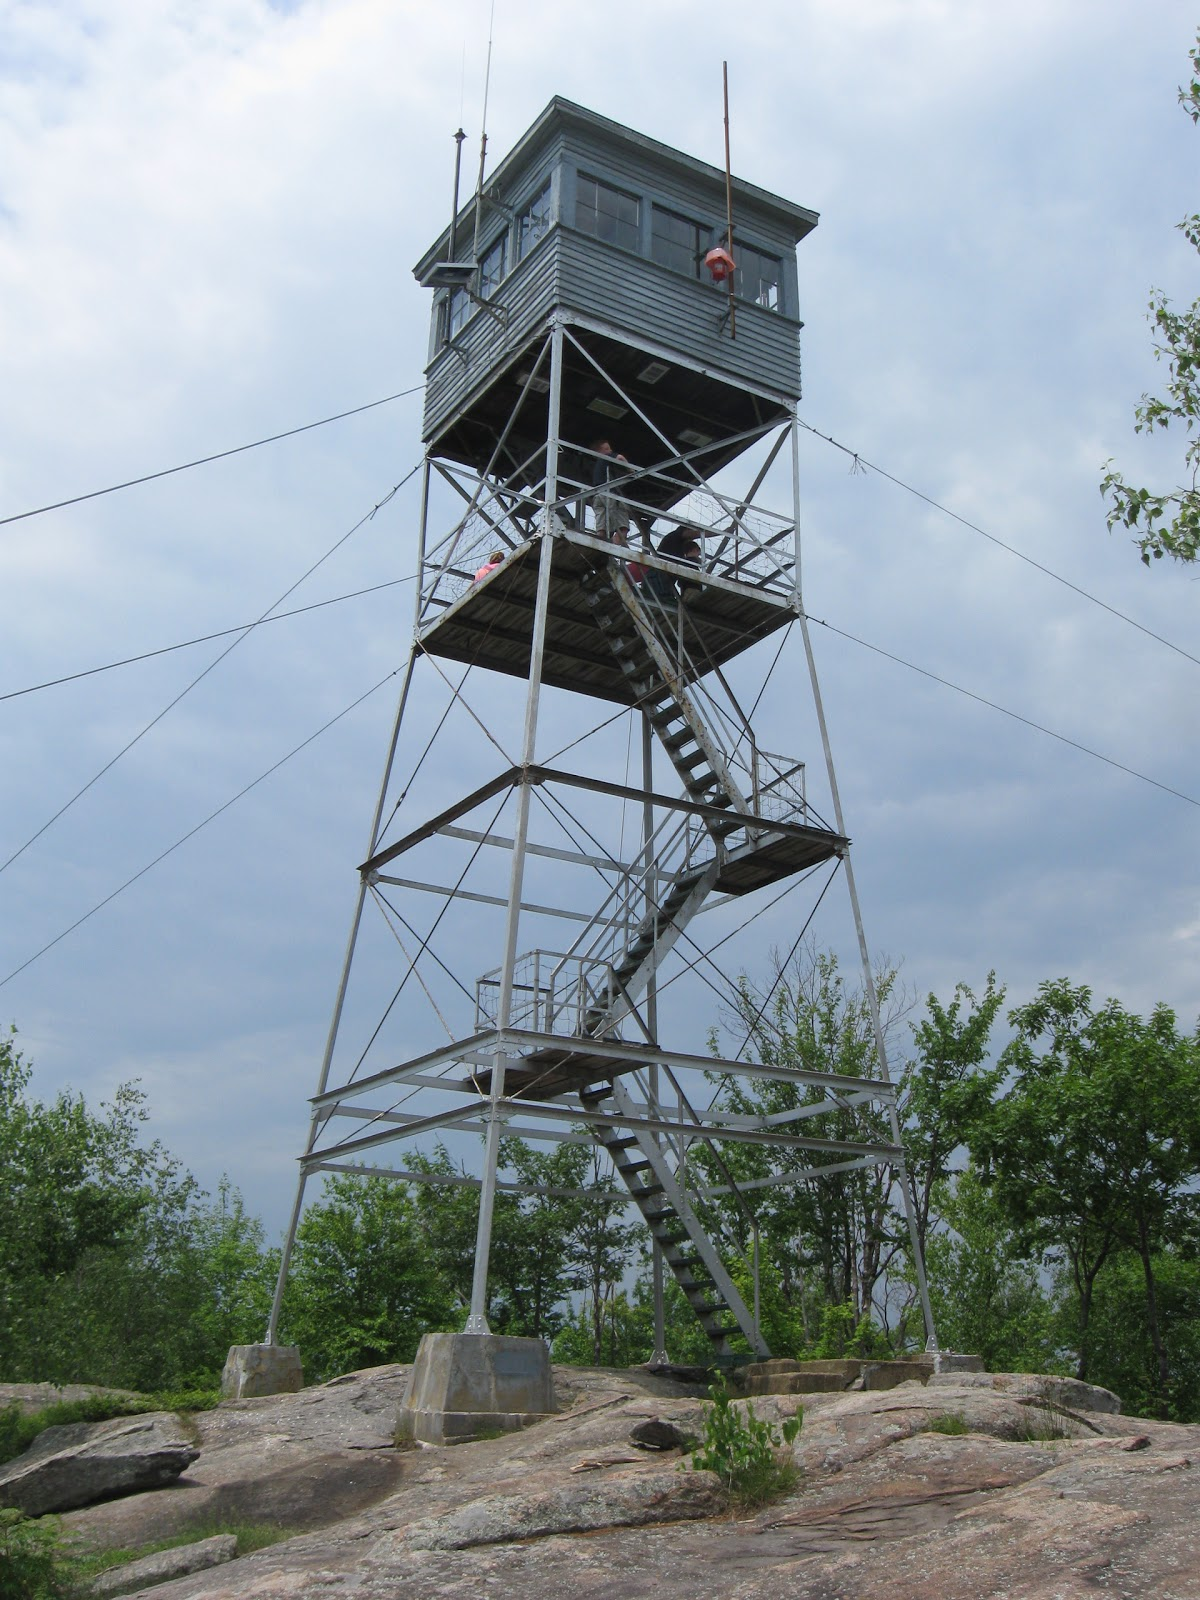 New england nature notes birding pawtuckaway state park in this fire tower sits atop a hill at pawtuckaway state park in nottingham new hampshire and is surrounded by a variety of bird feeders publicscrutiny Gallery